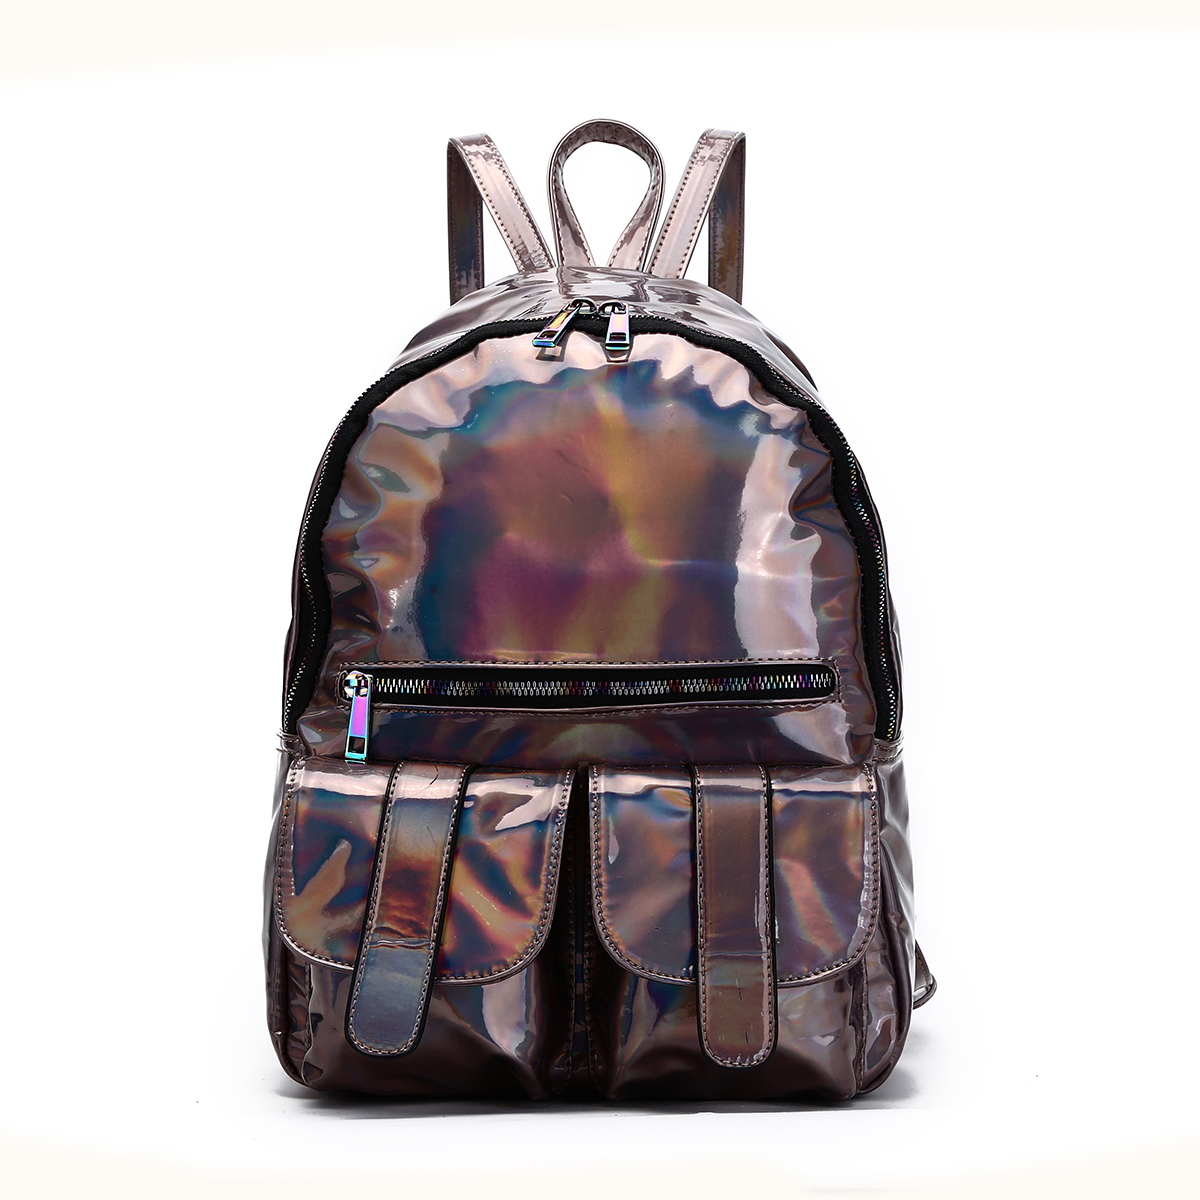 Hologram Dual Pocket Backpack with Rainbow Zipper Pewter